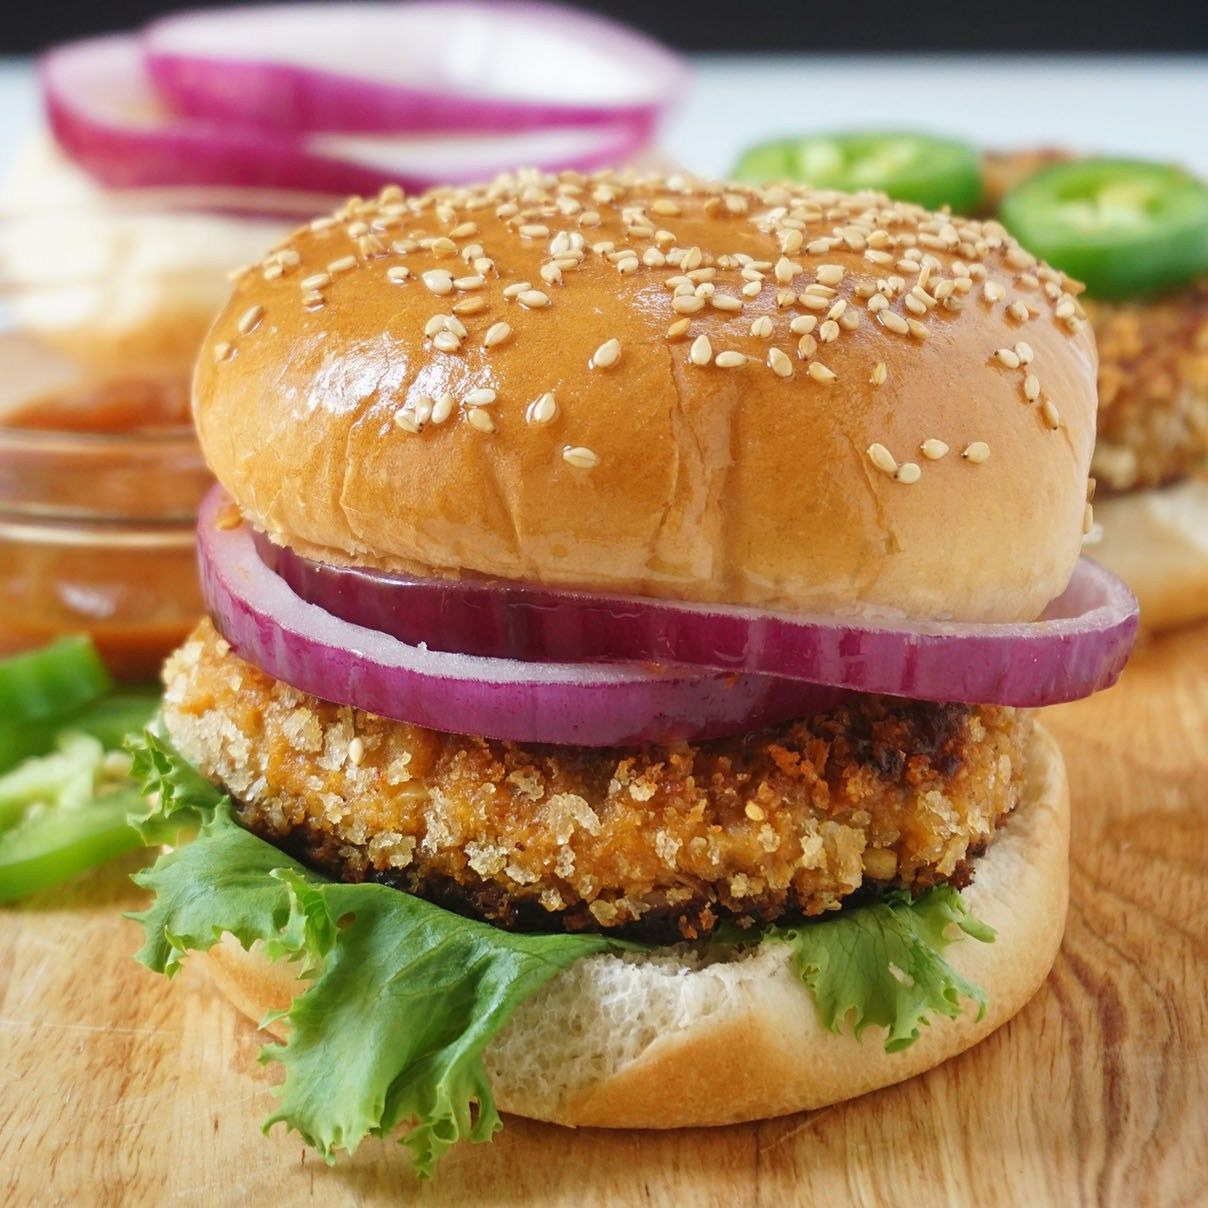 These vegan chickpea burgers are super easy to throw together for an easy dinner and boy do they deliver on flavor! Recipe includes a simple homemade barbecue sauce that is sweetened with dates!